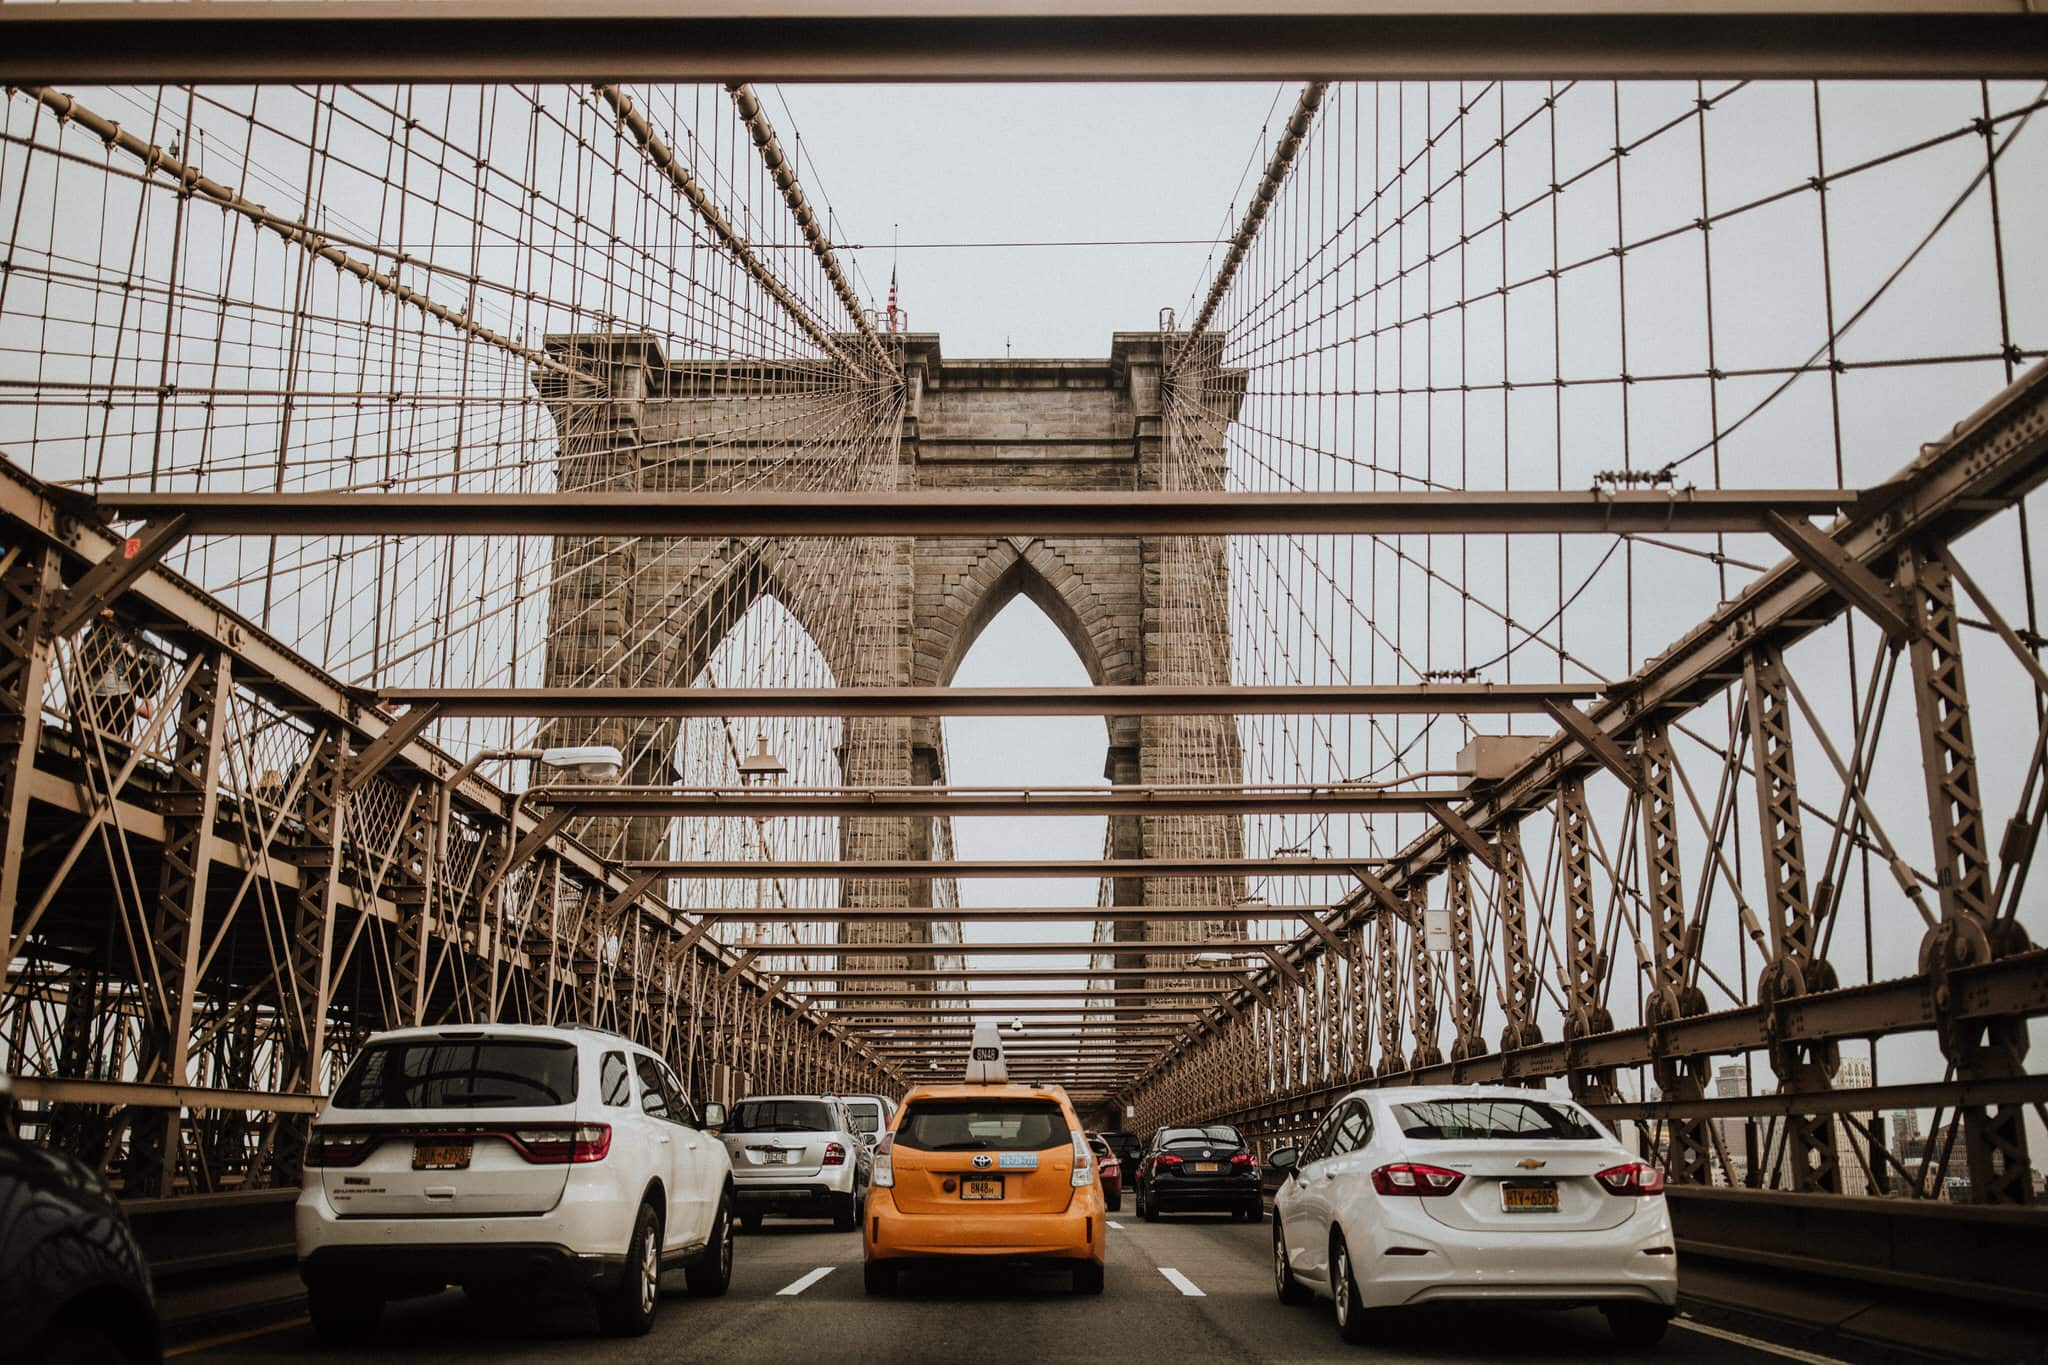 A taxi on the Brooklyn Bridge, New York City. Wedding Photographer Brent Calis.